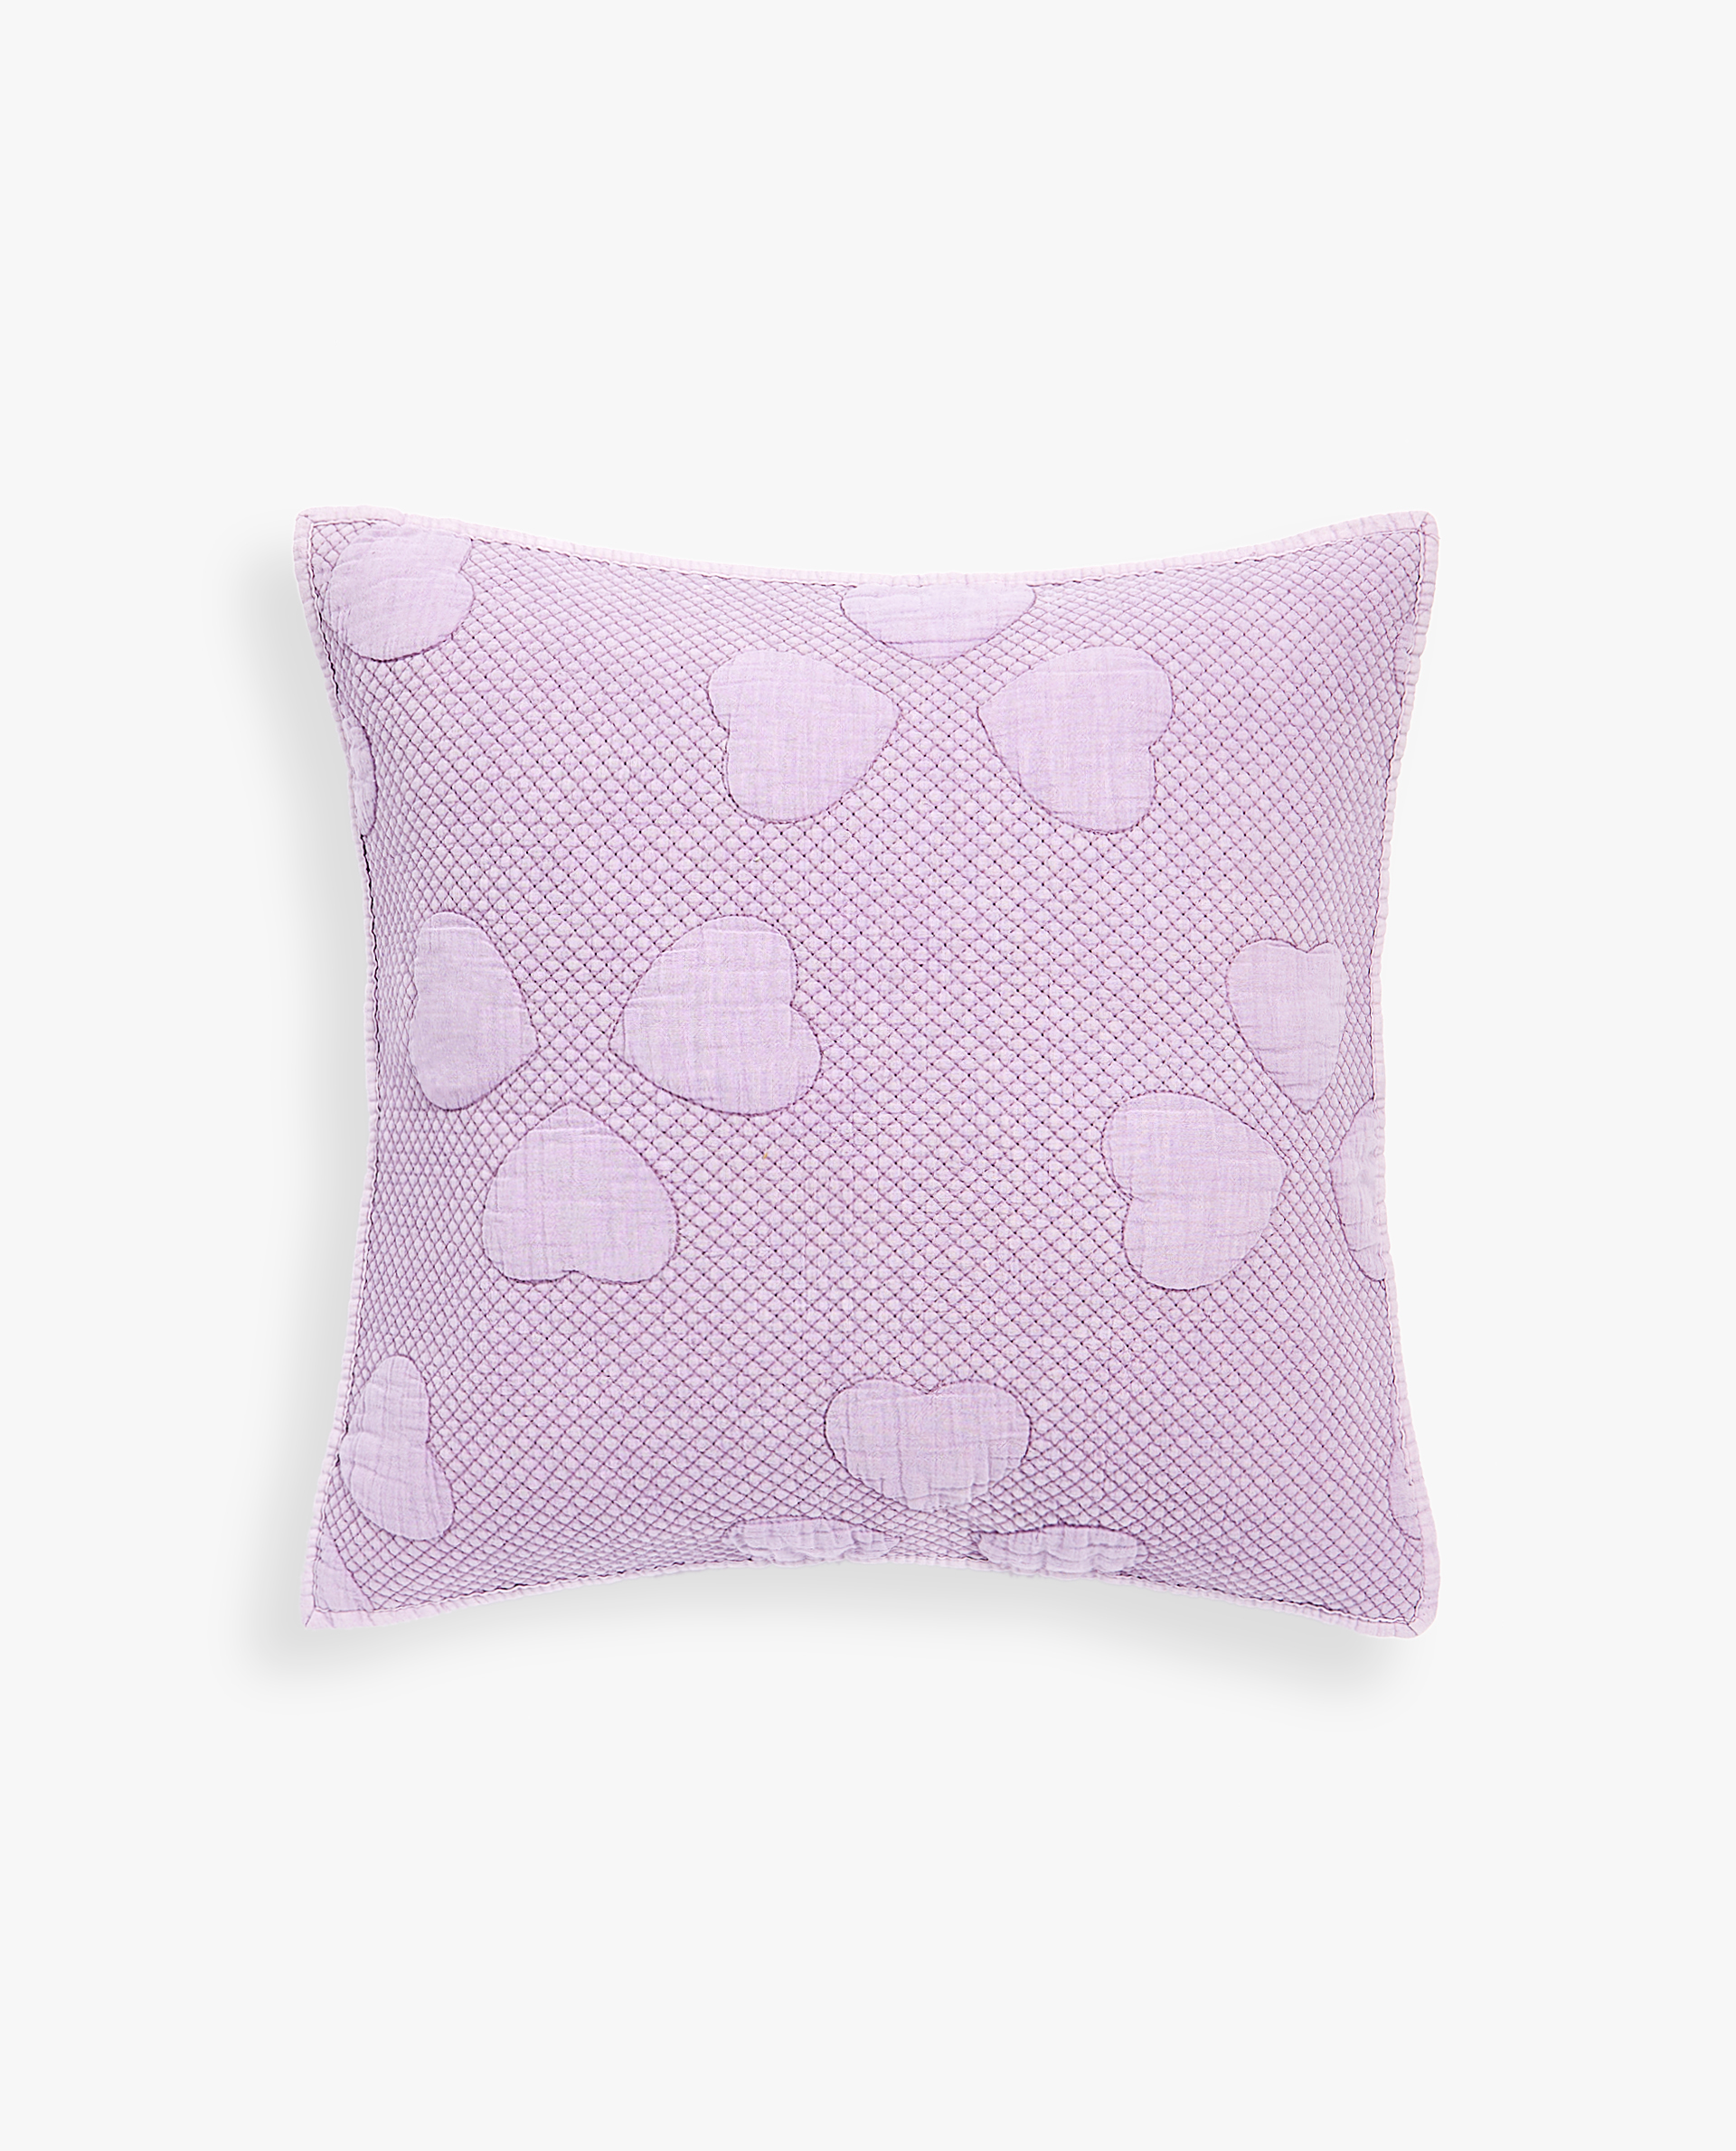 WASHED COTTON CUSHION COVER WITH RAISED HEART DESIGN